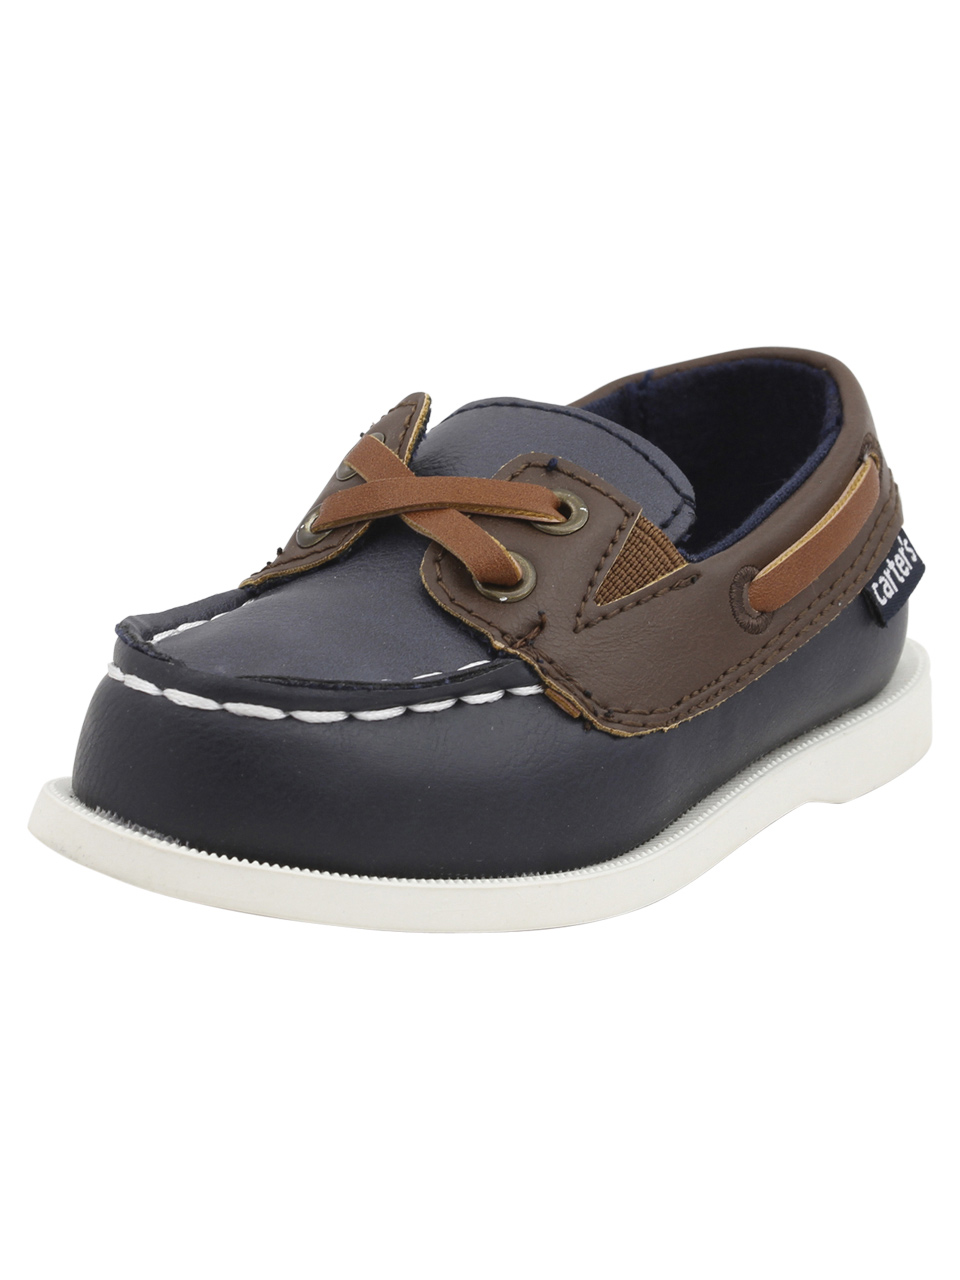 307aad293 Carter s Toddler Boy s Bauk Navy Loafers Boat Shoes